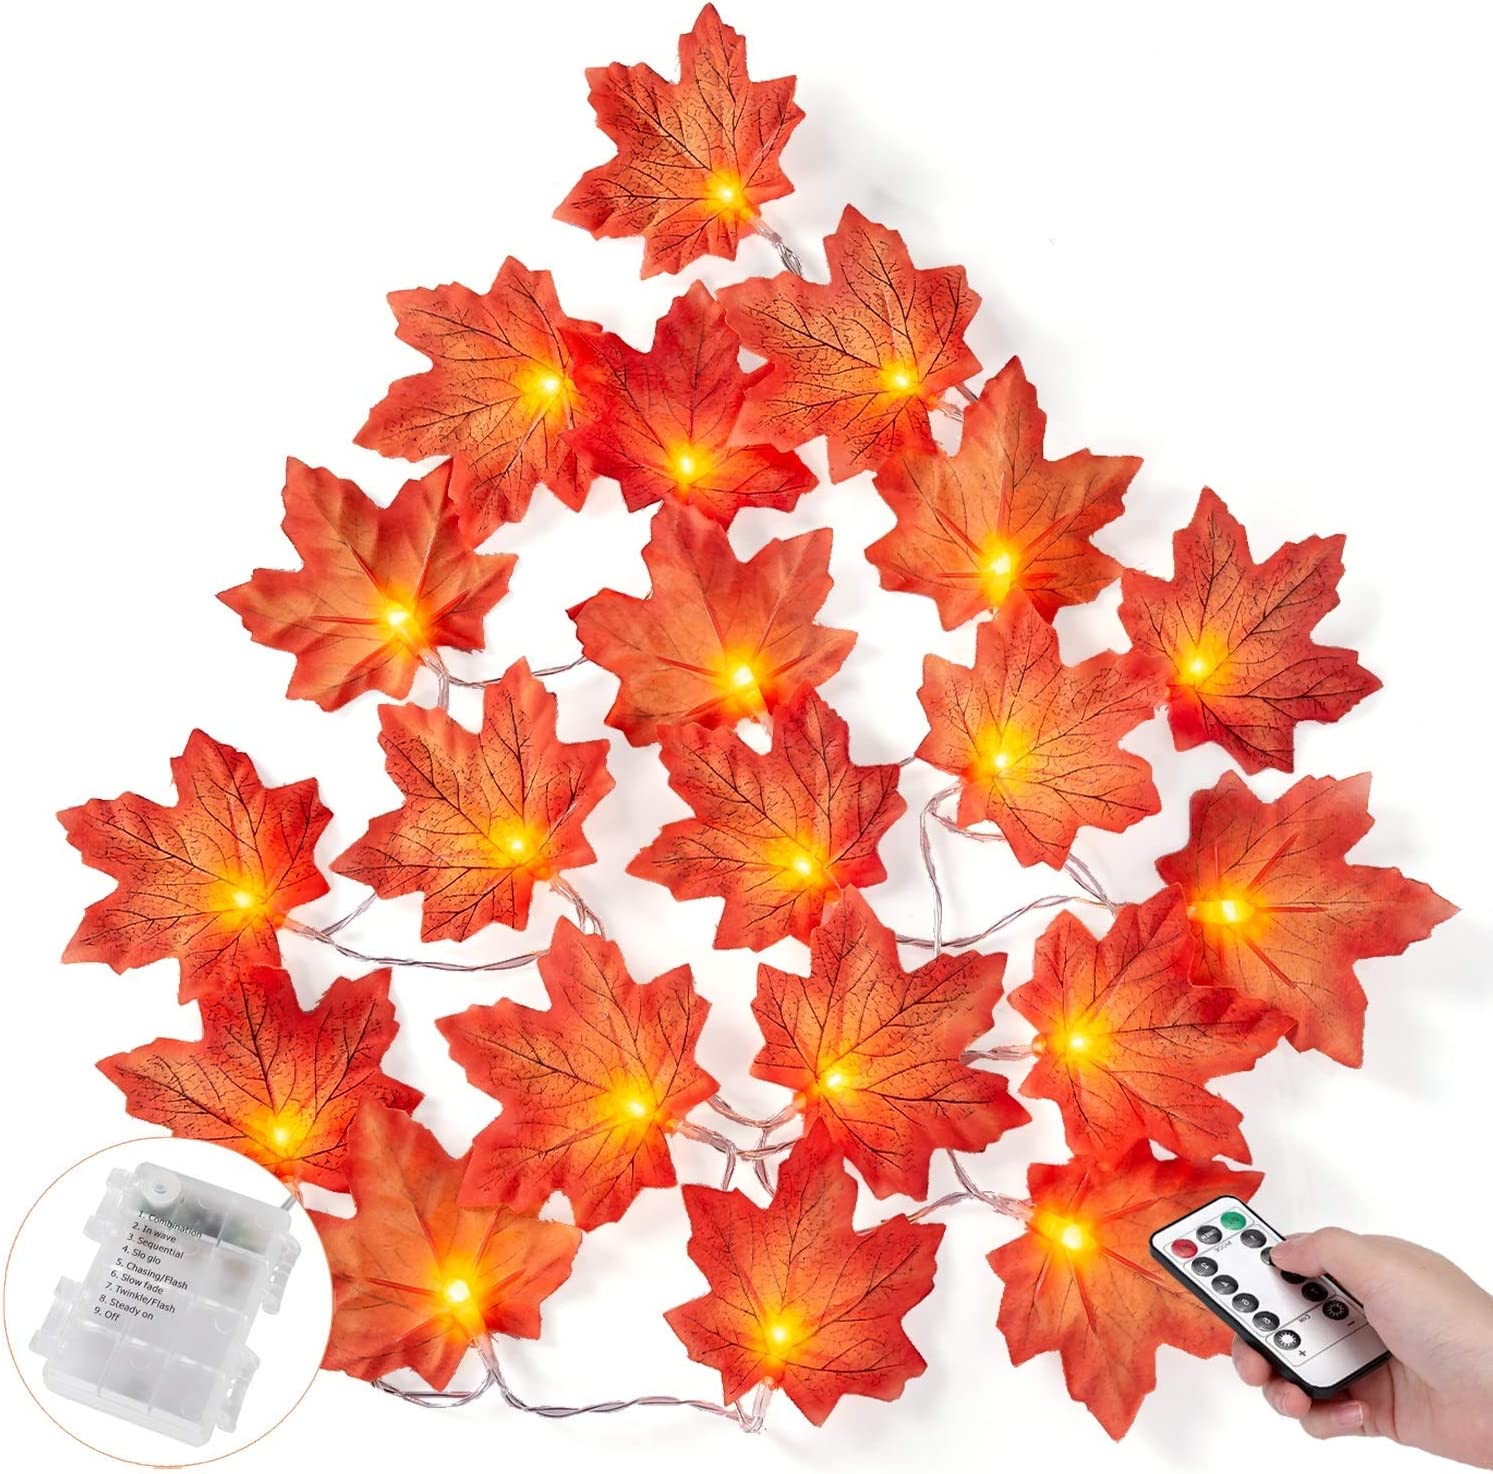 Halloween Decorations Lights , Fall Maple Leaves Garland String Fairy Lights with Remote for Autumn Decor Thanksgiving Day Christmas Weddings Parties Decor (8 Blinking Modes/20LED with Remote)